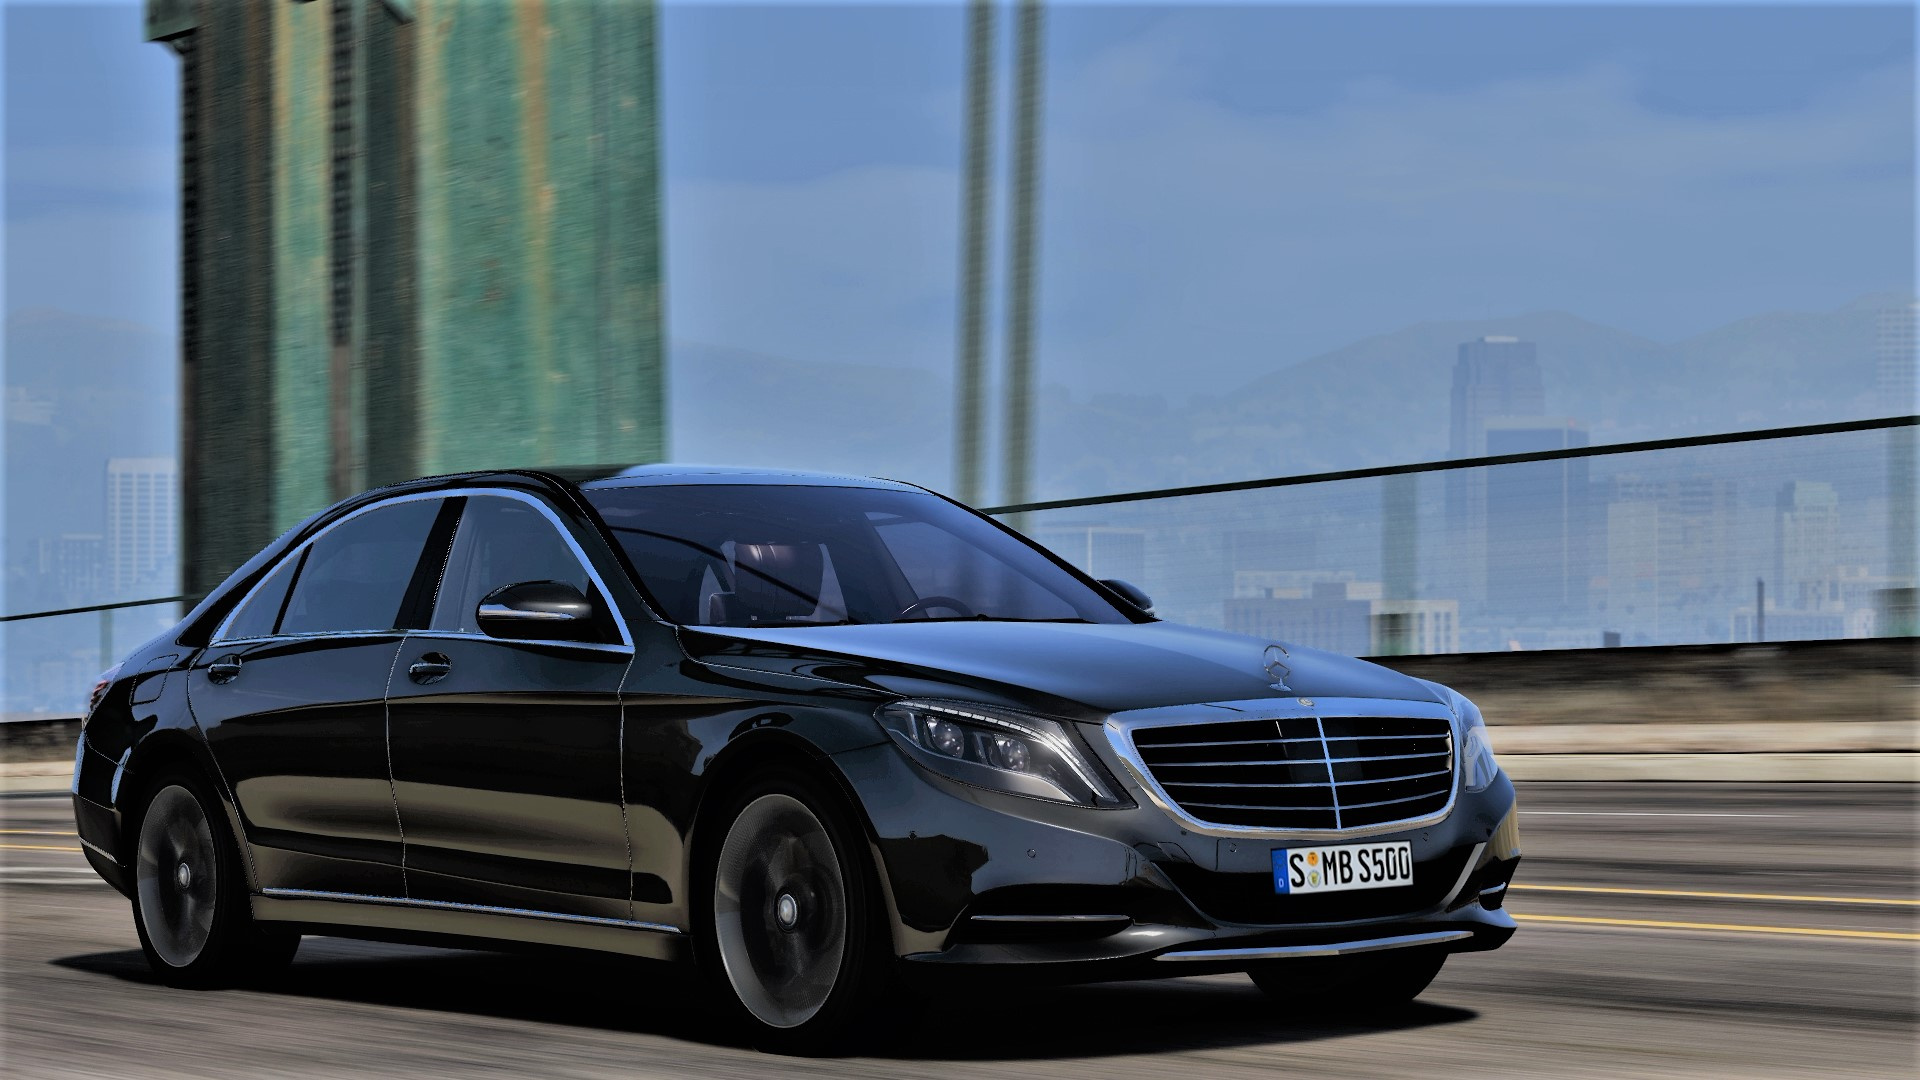 2014 Mercedes Benz S500 L S550 4matic W222 Add On Tuning Gta5 Mods Com